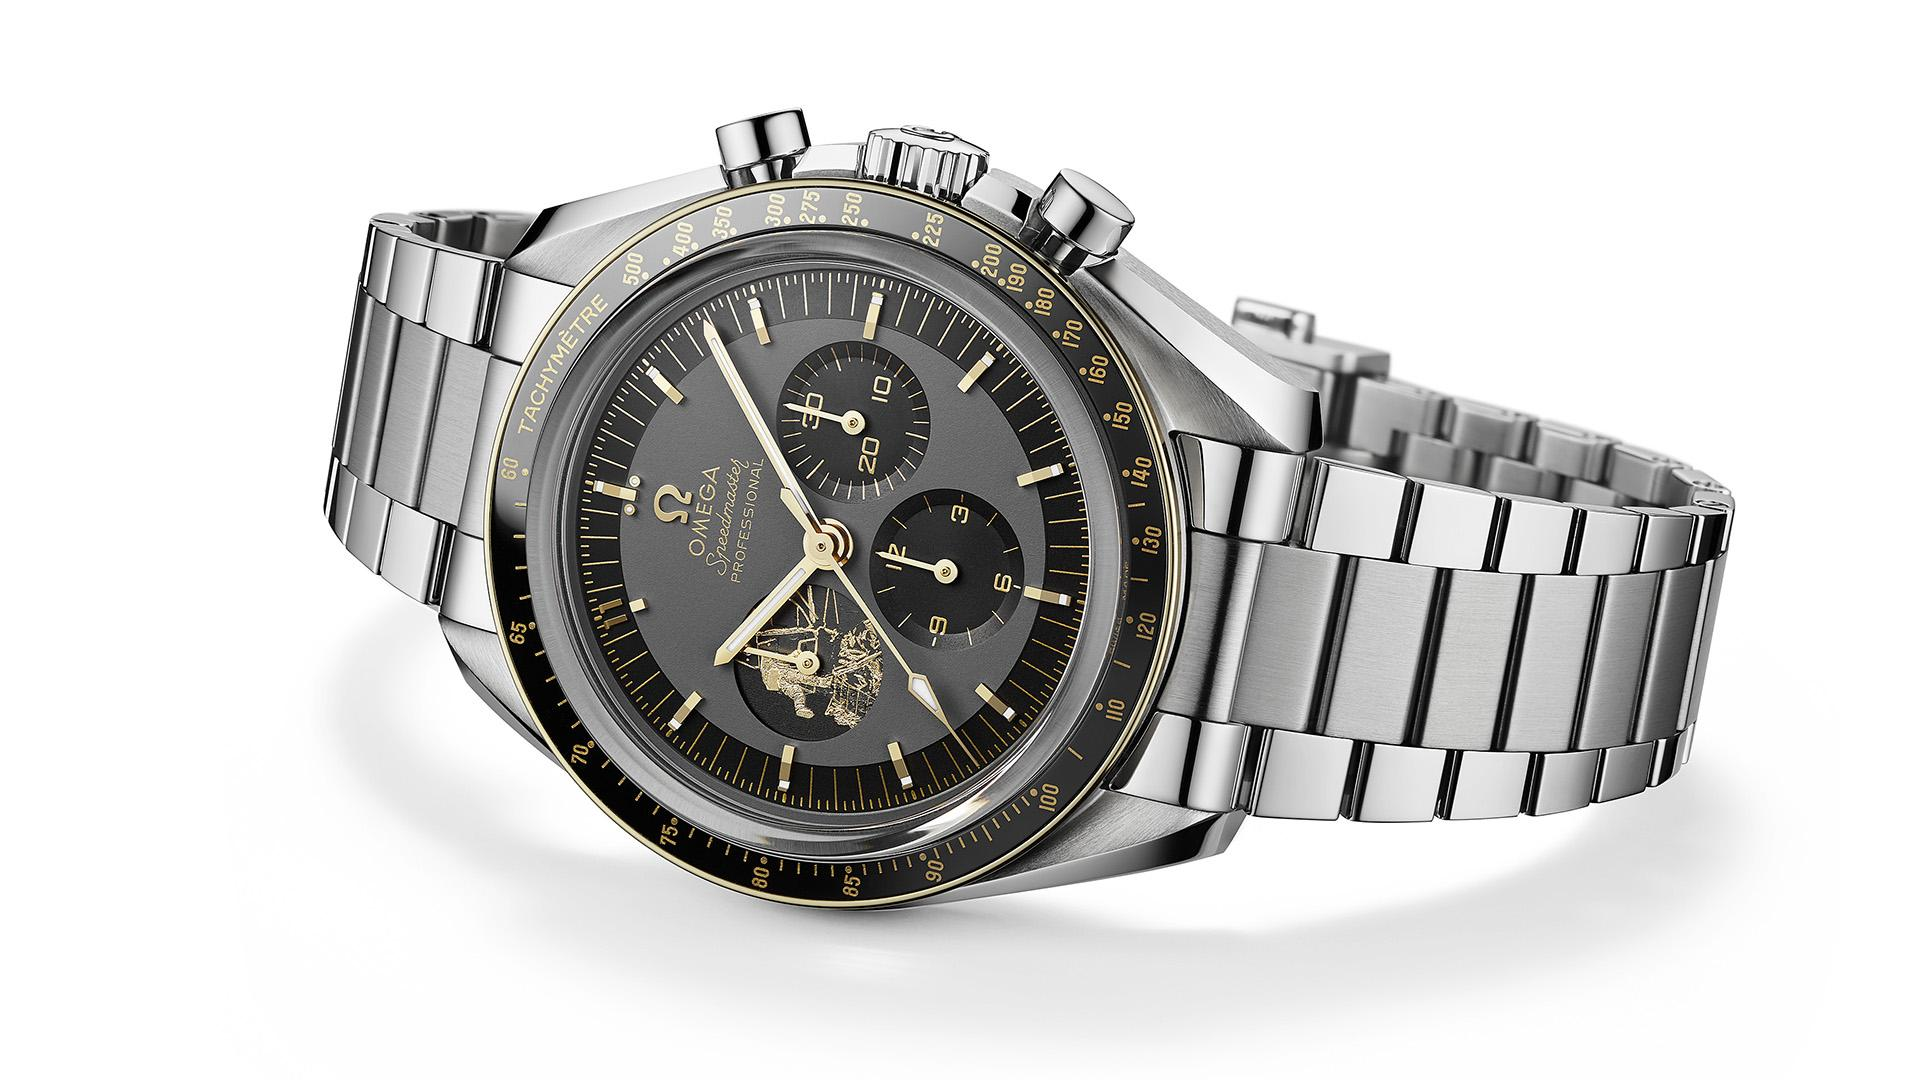 Omega Speedmaster Apollo 11 Anniversary Limited Edition